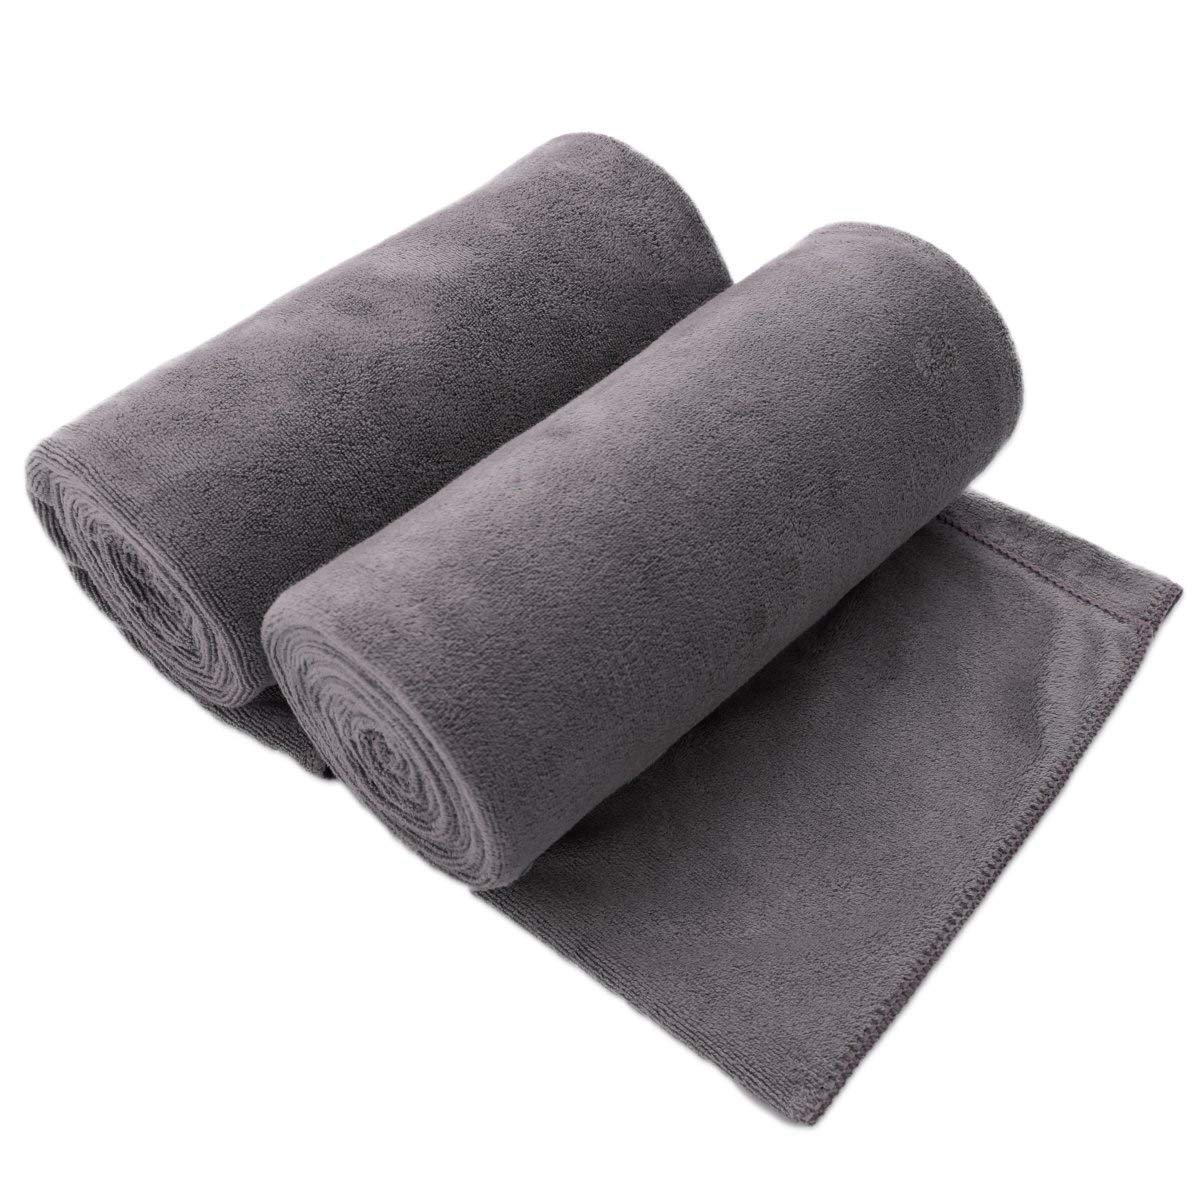 "JML Microfiber Bath Towels, Bath Towel 2 Pack(30"" x 60""), Oversized, Soft, Super Absorbent and Fast Drying, No Fading Multipurpose Use for Sports, Travel, Fitness, Yoga - Grey"